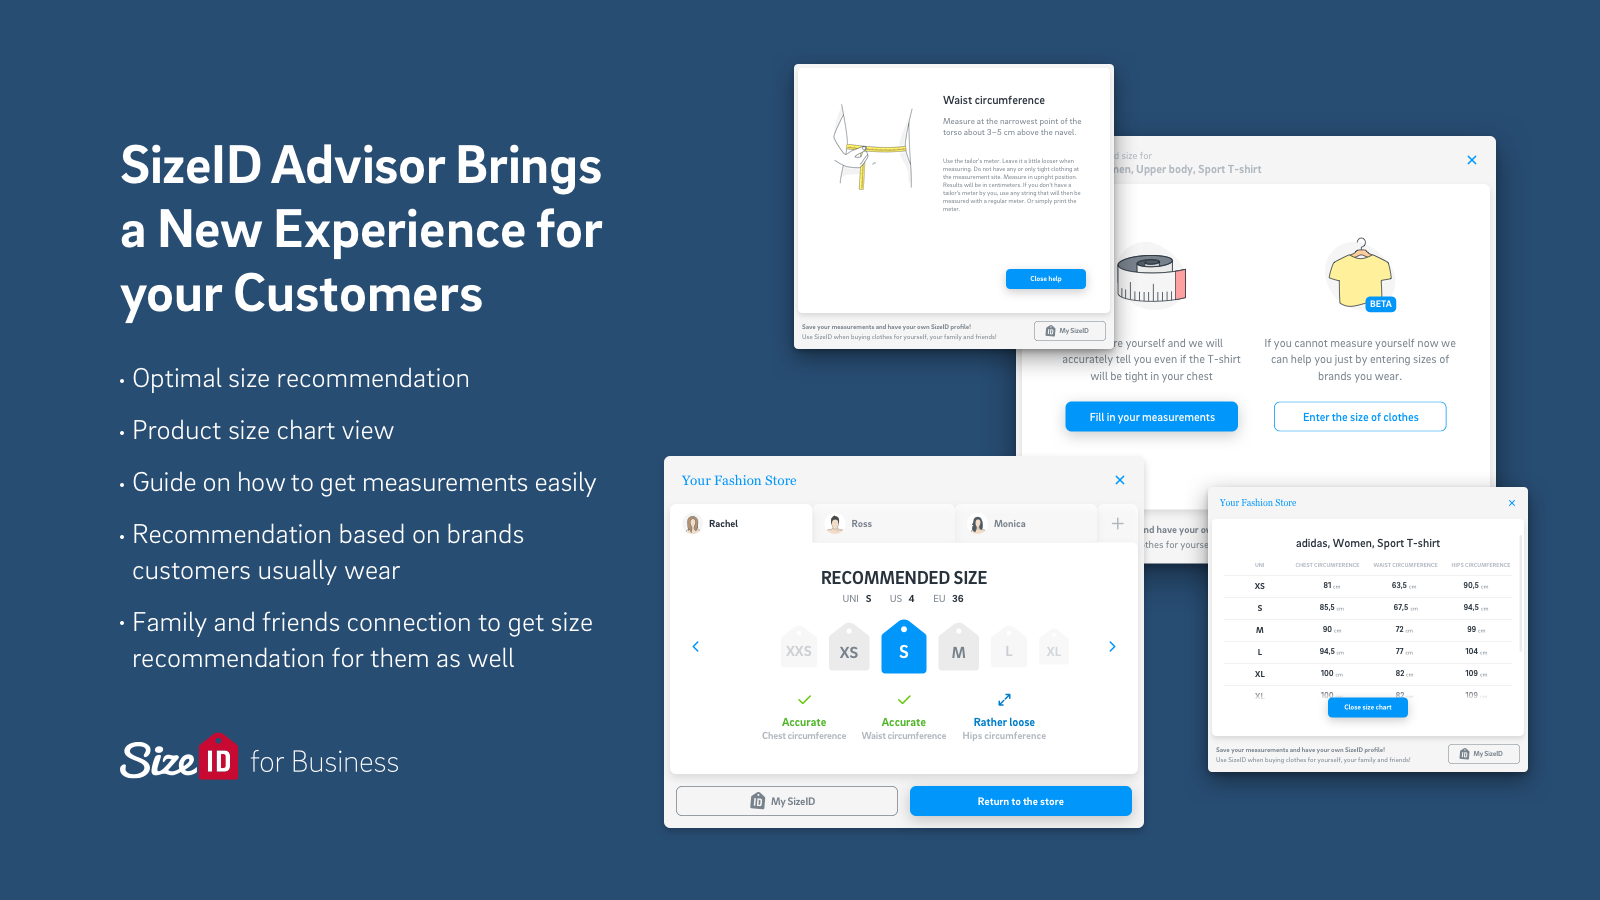 SizeID Advisor Brings a New Experience for your customers